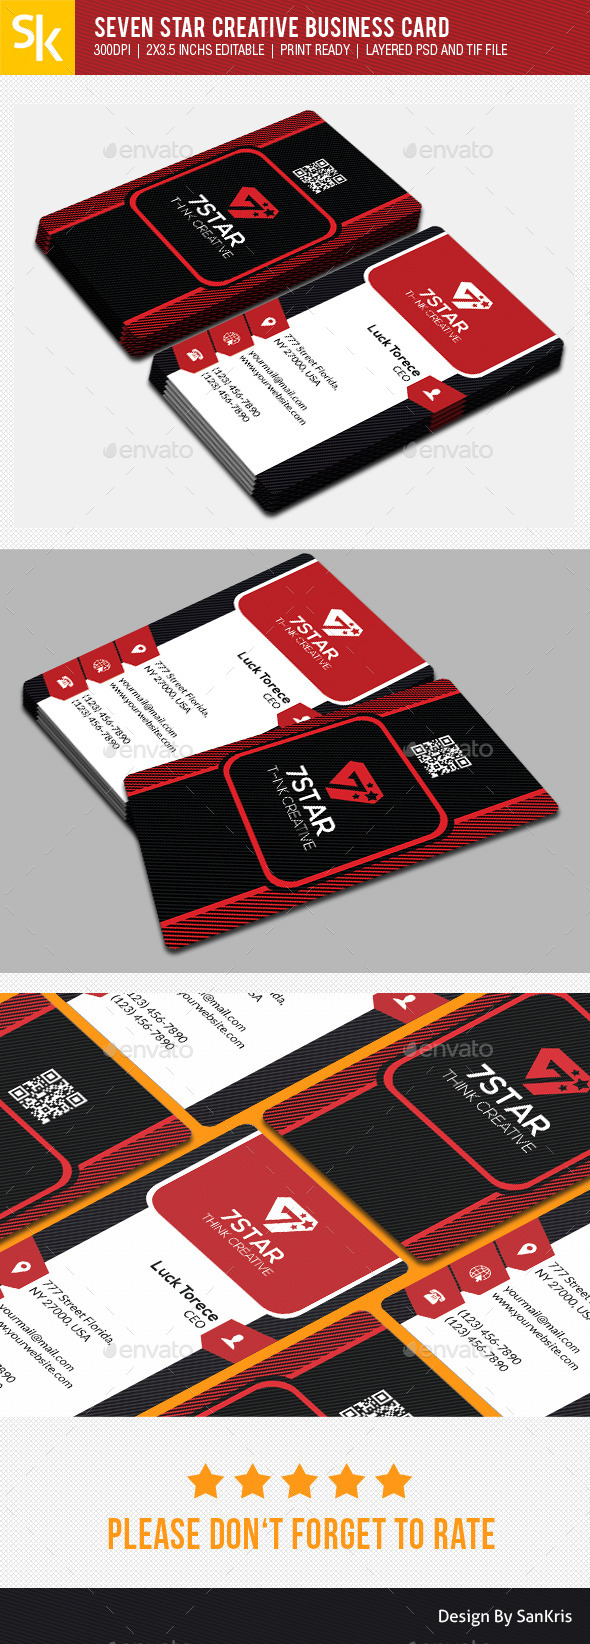 GraphicRiver Seven Star Creative Business Card 10689490